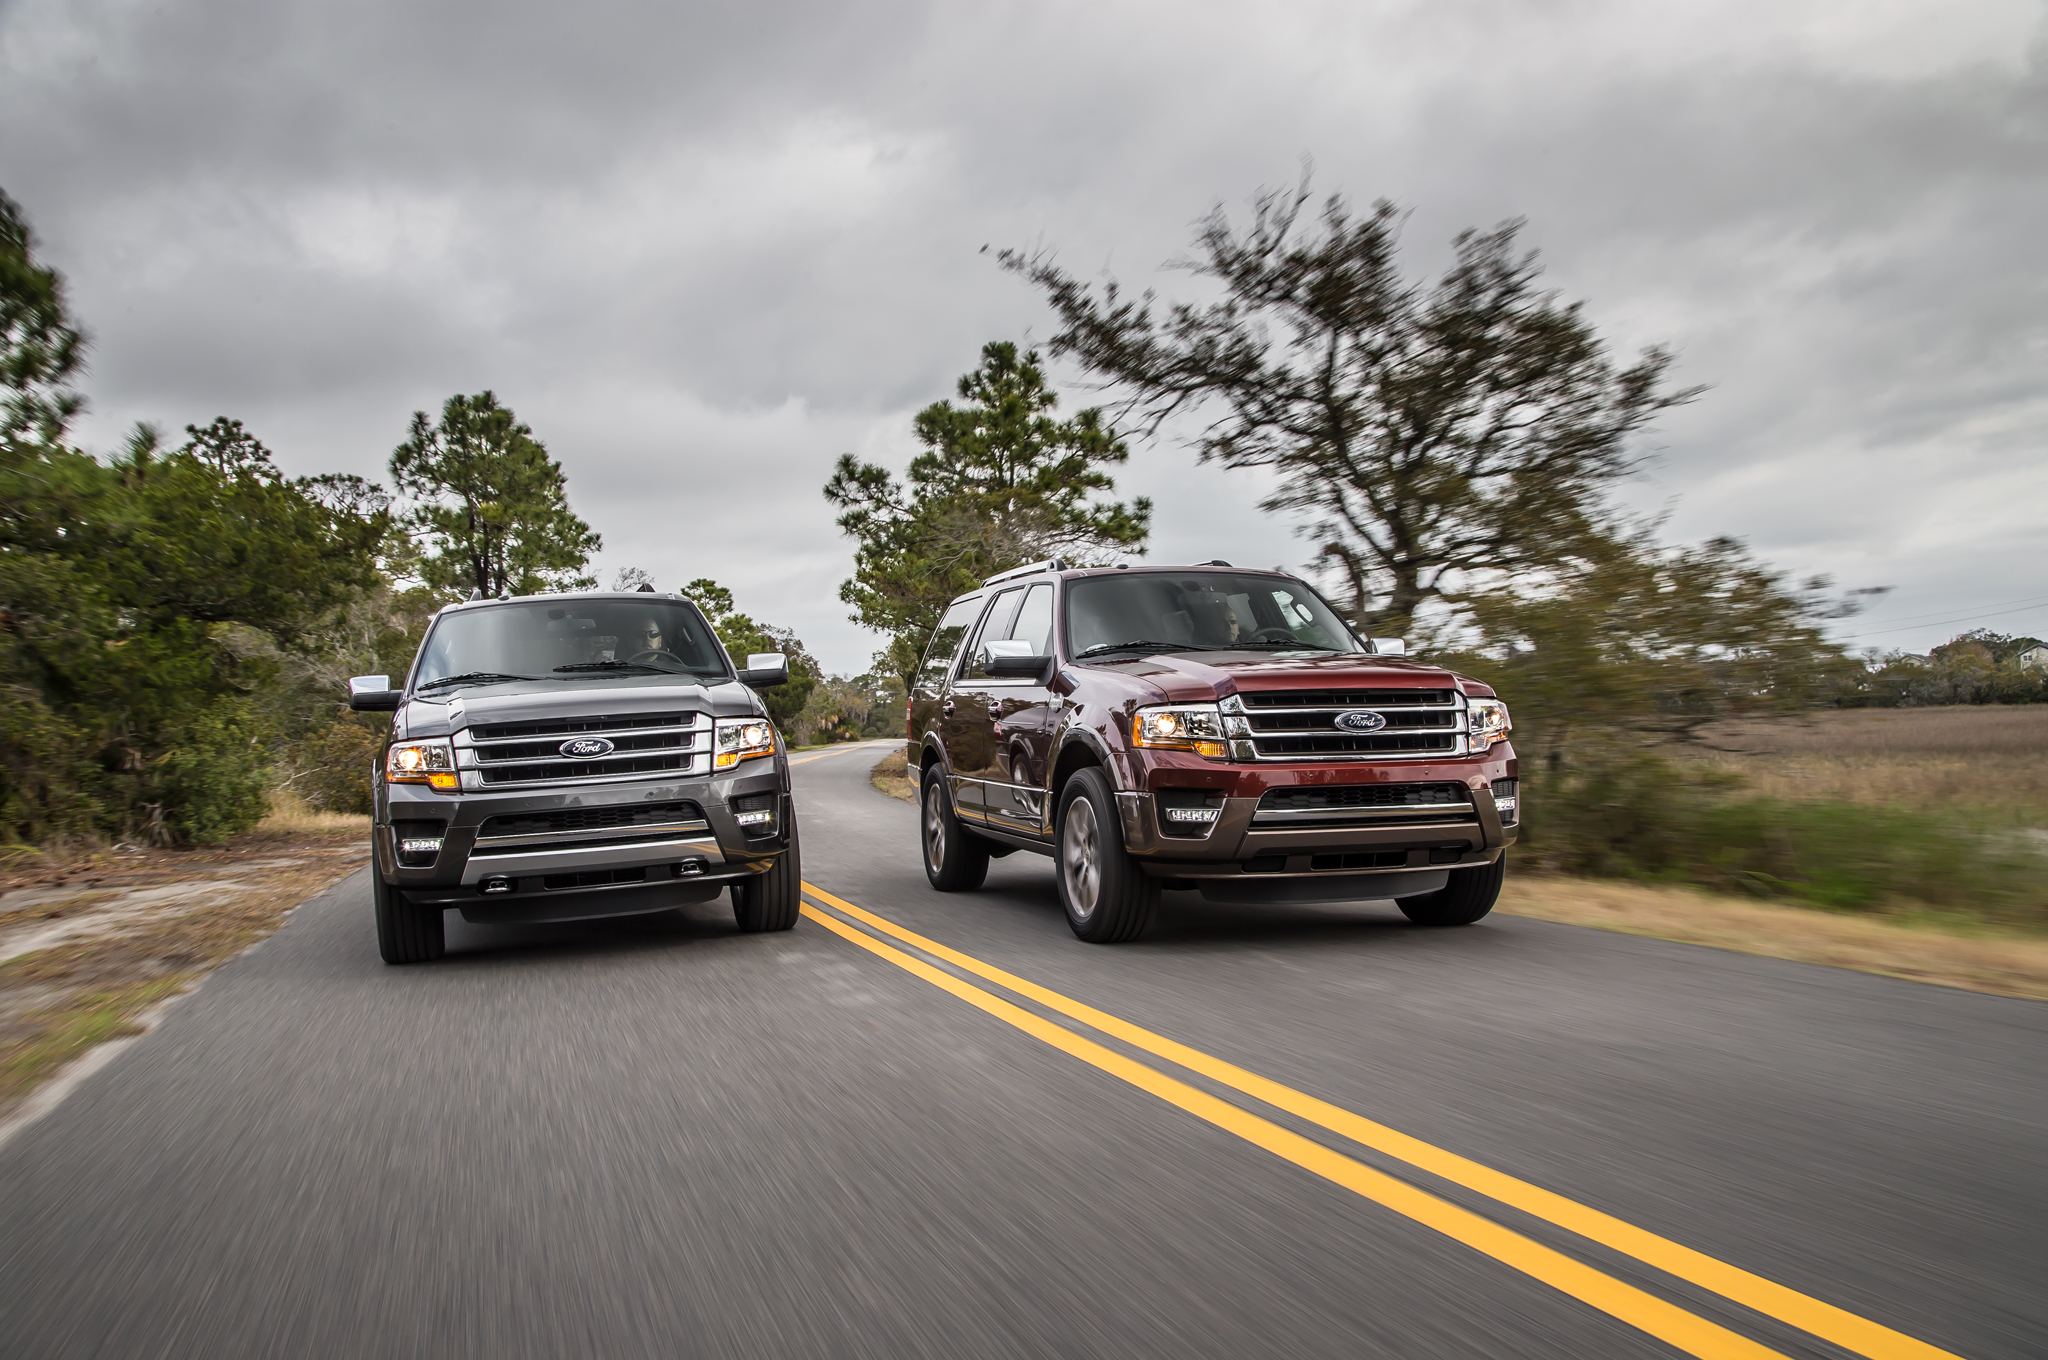 2015 Ford Expedition Drive